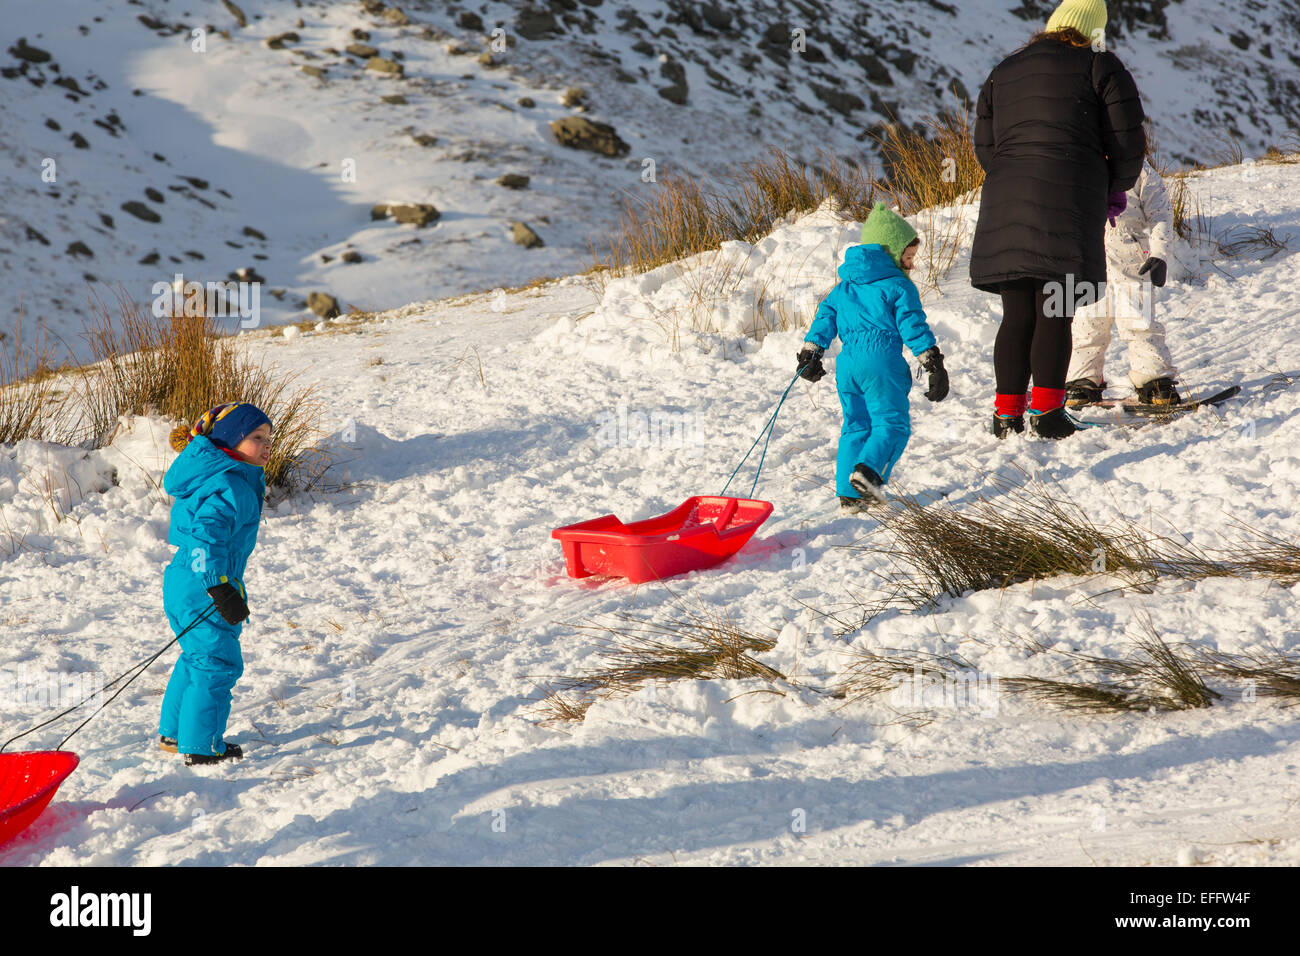 A family sledging on Kirkstone Pass in the Lake District, UK. - Stock Image